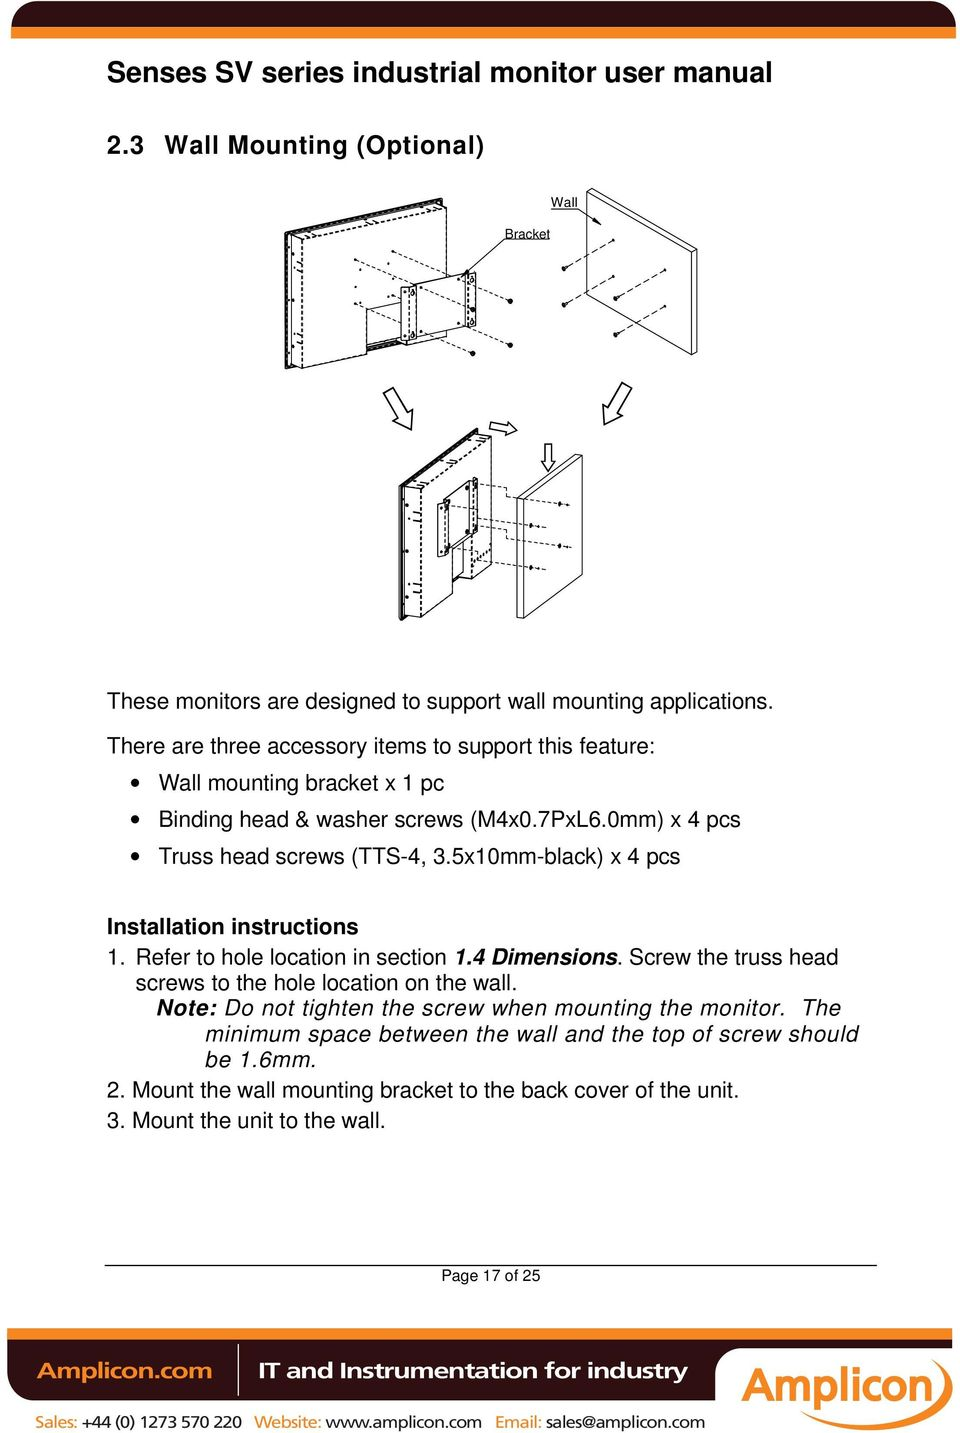 5x10mm-black) x 4 pcs Installation instructions 1. Refer to hole location in section 1.4 Dimensions. Screw the truss head screws to the hole location on the wall.